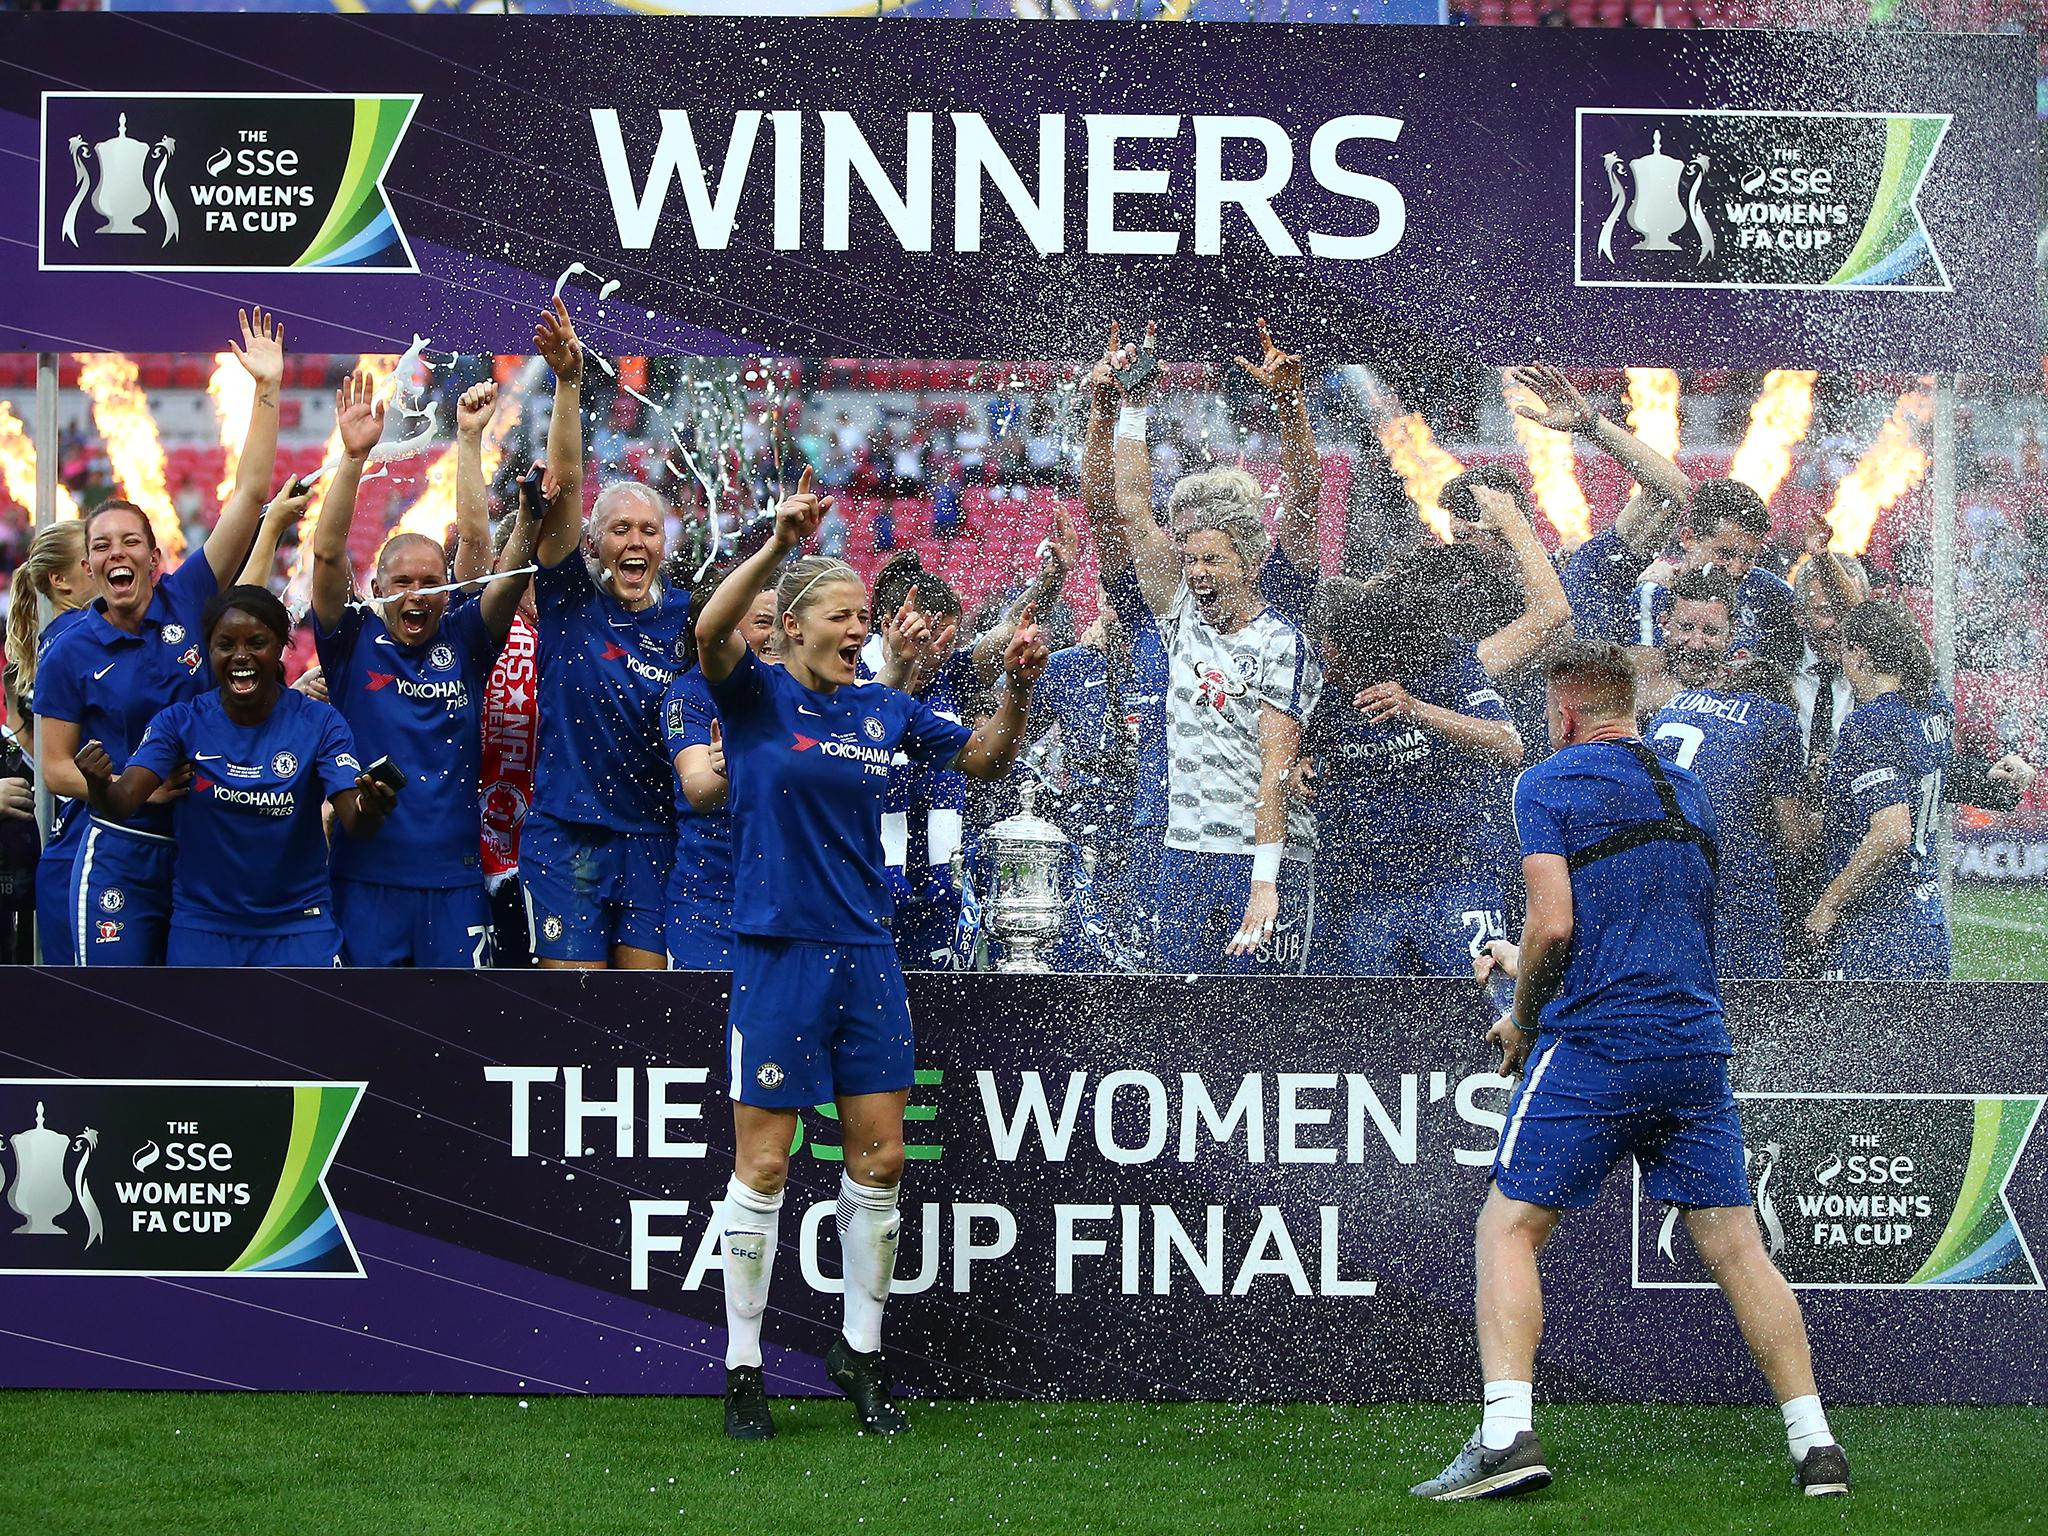 Chelsea Fc Women S Name Change Is Much More Than A Mere Nod To Gender Equality The Independent The Independent